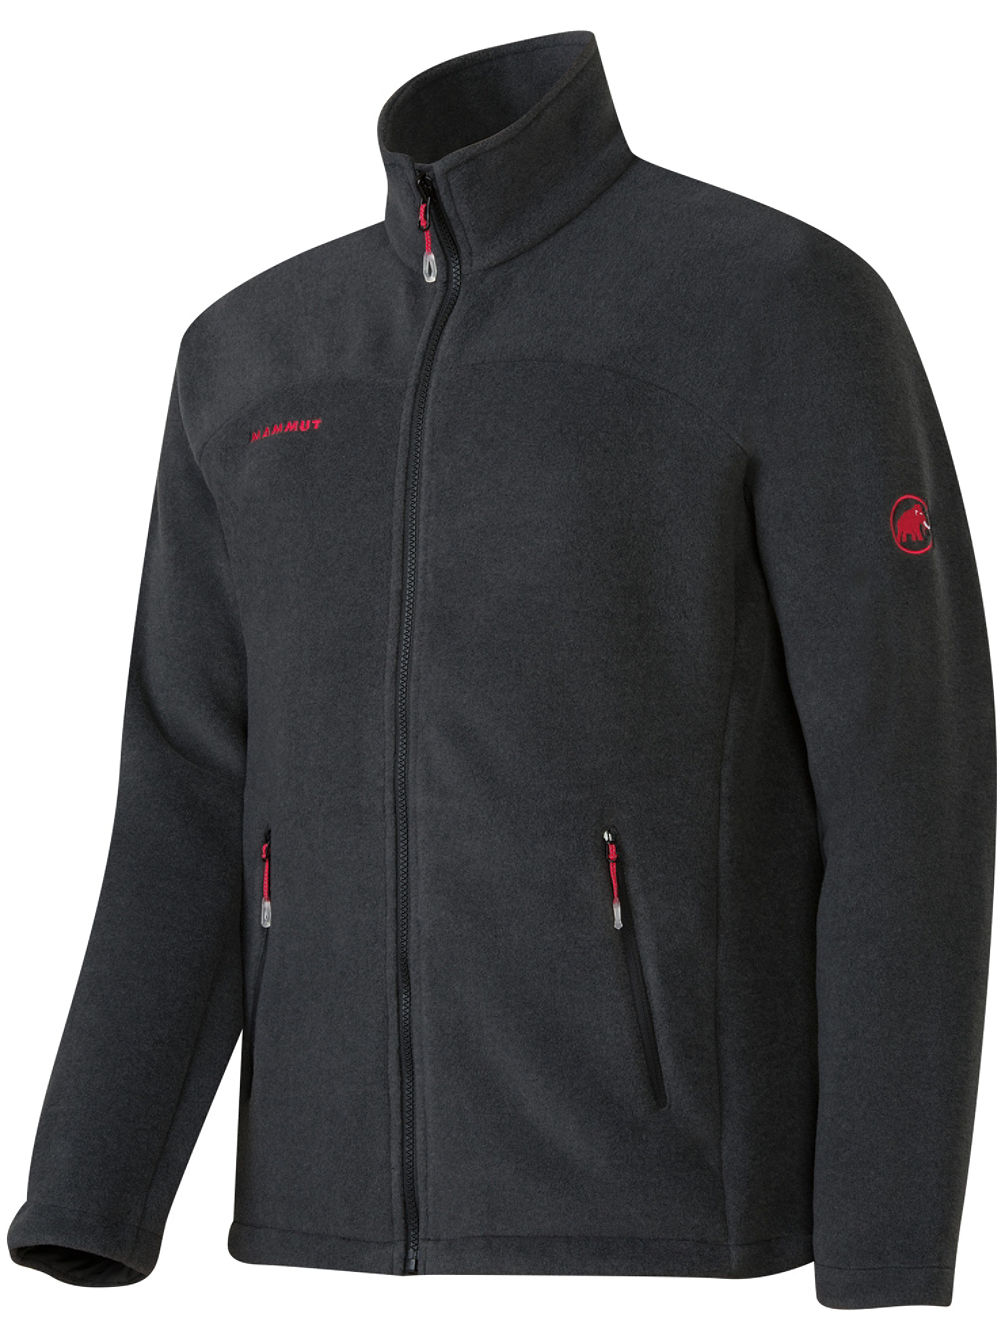 mammut-innominata-advanced-fleece-jacket